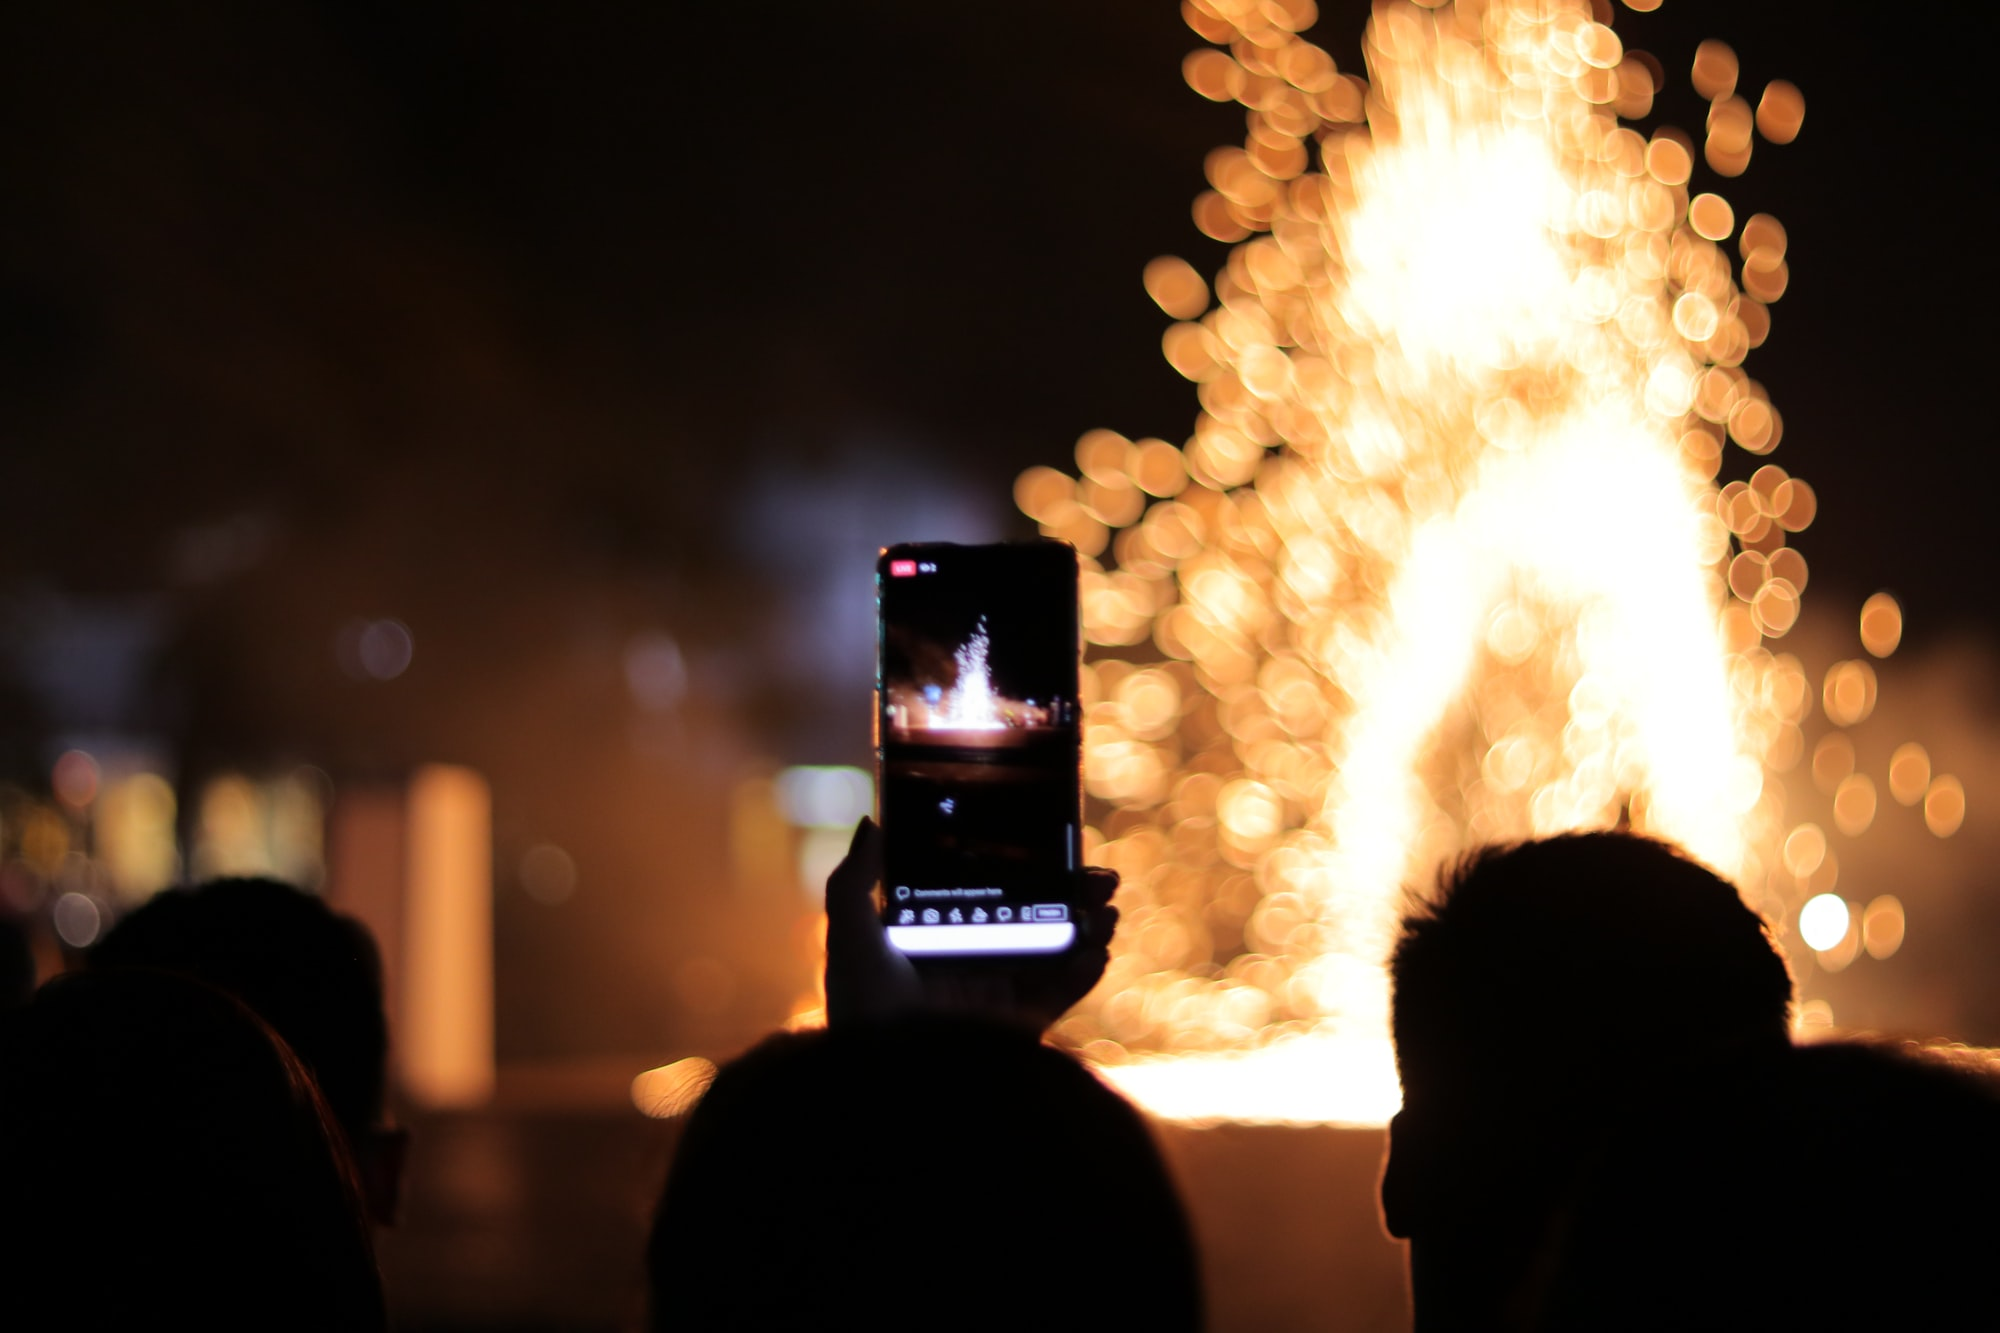 A very nice night event. phone and bokeh